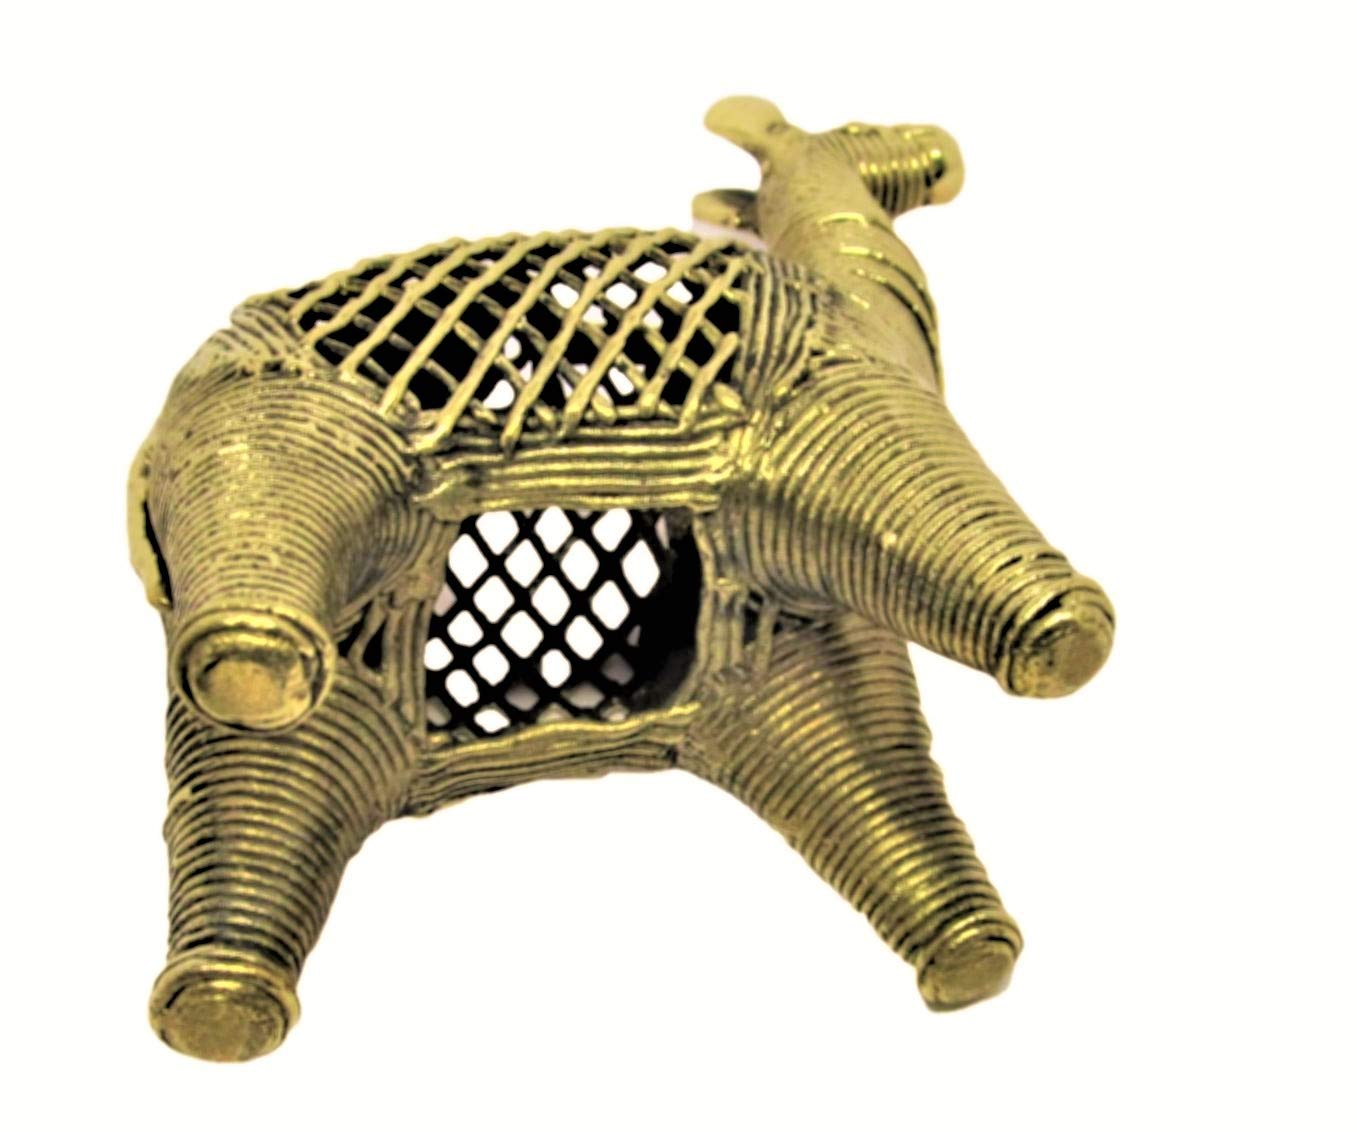 Home Netted Small Decorative Camel Desk Decor OmSai Handcrafted Dhokra Metal Figurine